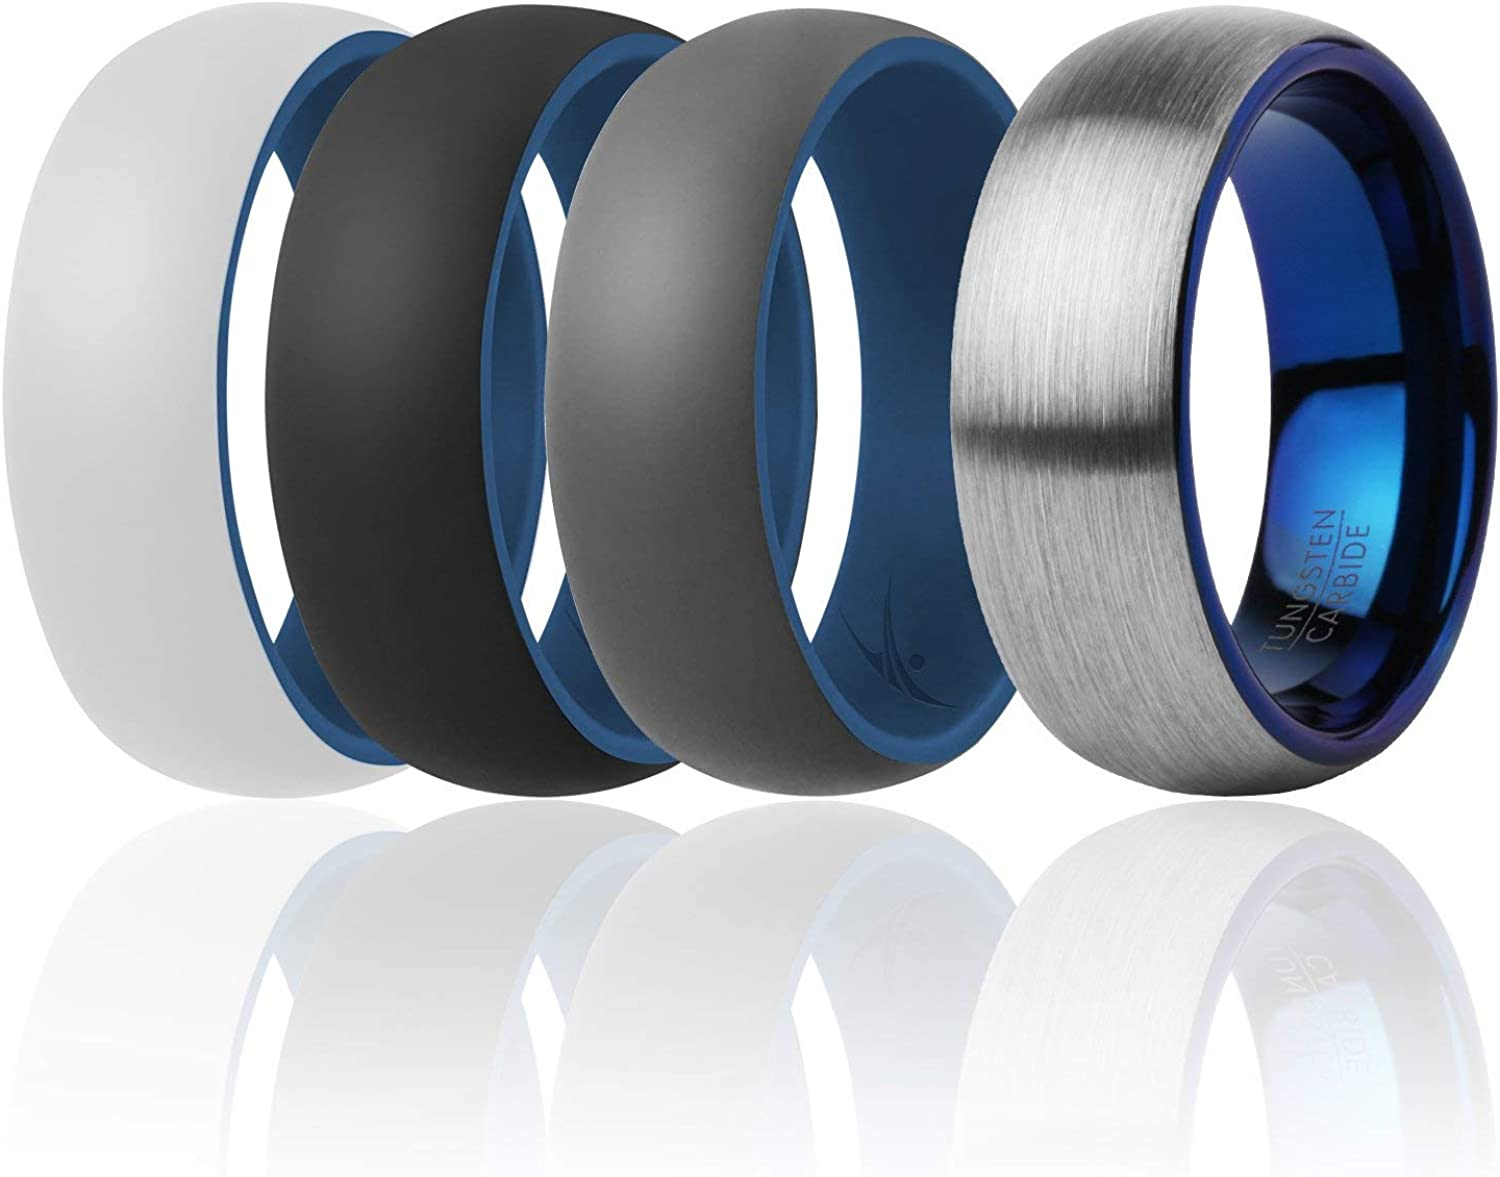 Mens Silicone Rings for Work//Sport//Hiking 4 Pack ROQ 8mm Dome Style 3 Silicone /& 1 Tungsten Carbide Wedding Rings for Men Tungsten Carbide Band for Special Events